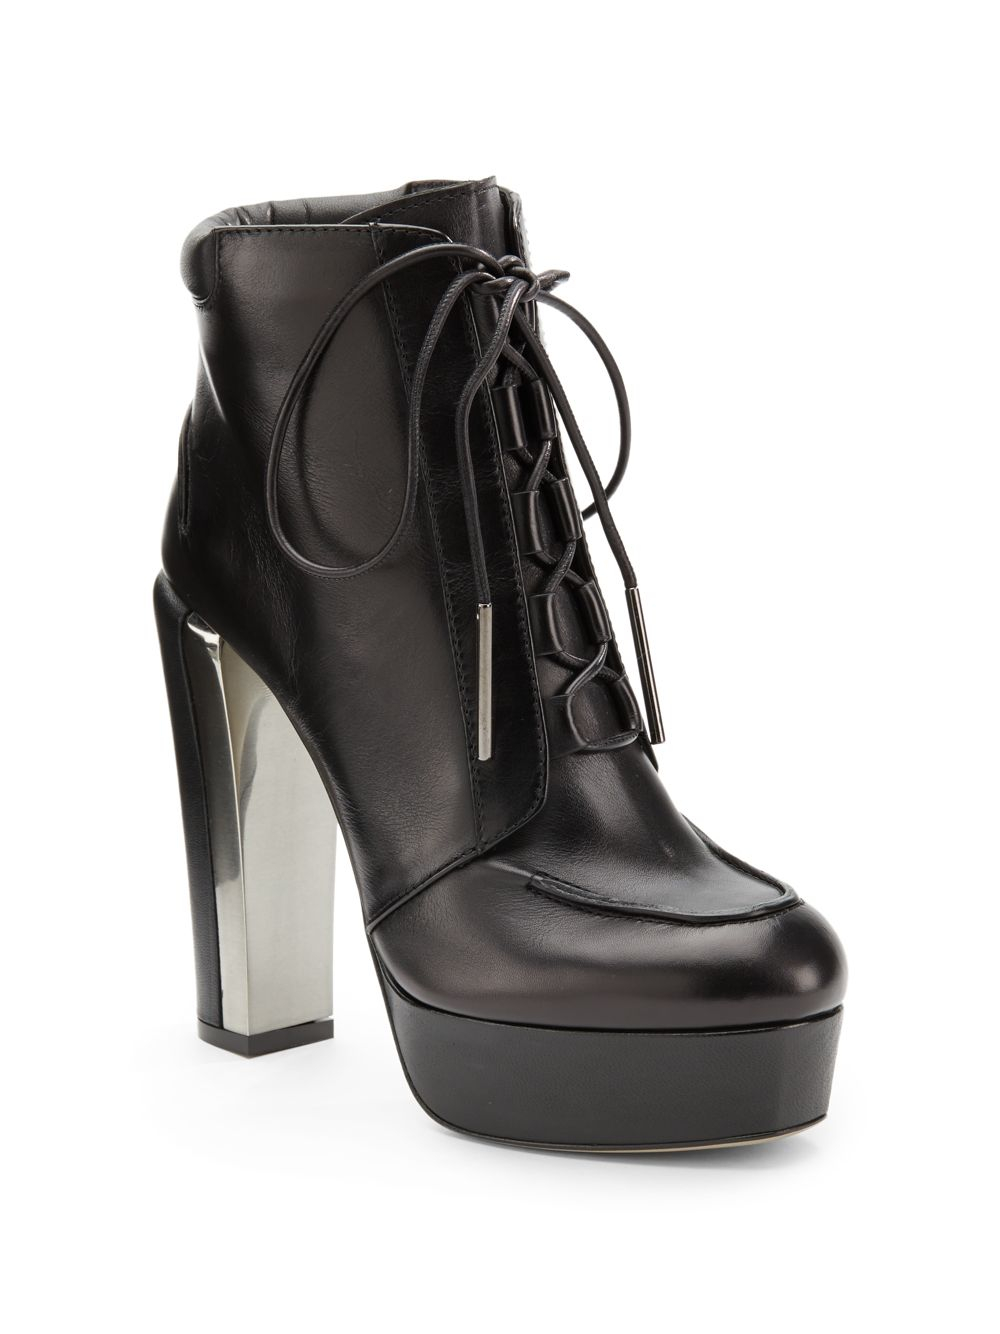 calvin klein alena leather platform ankle boots in black